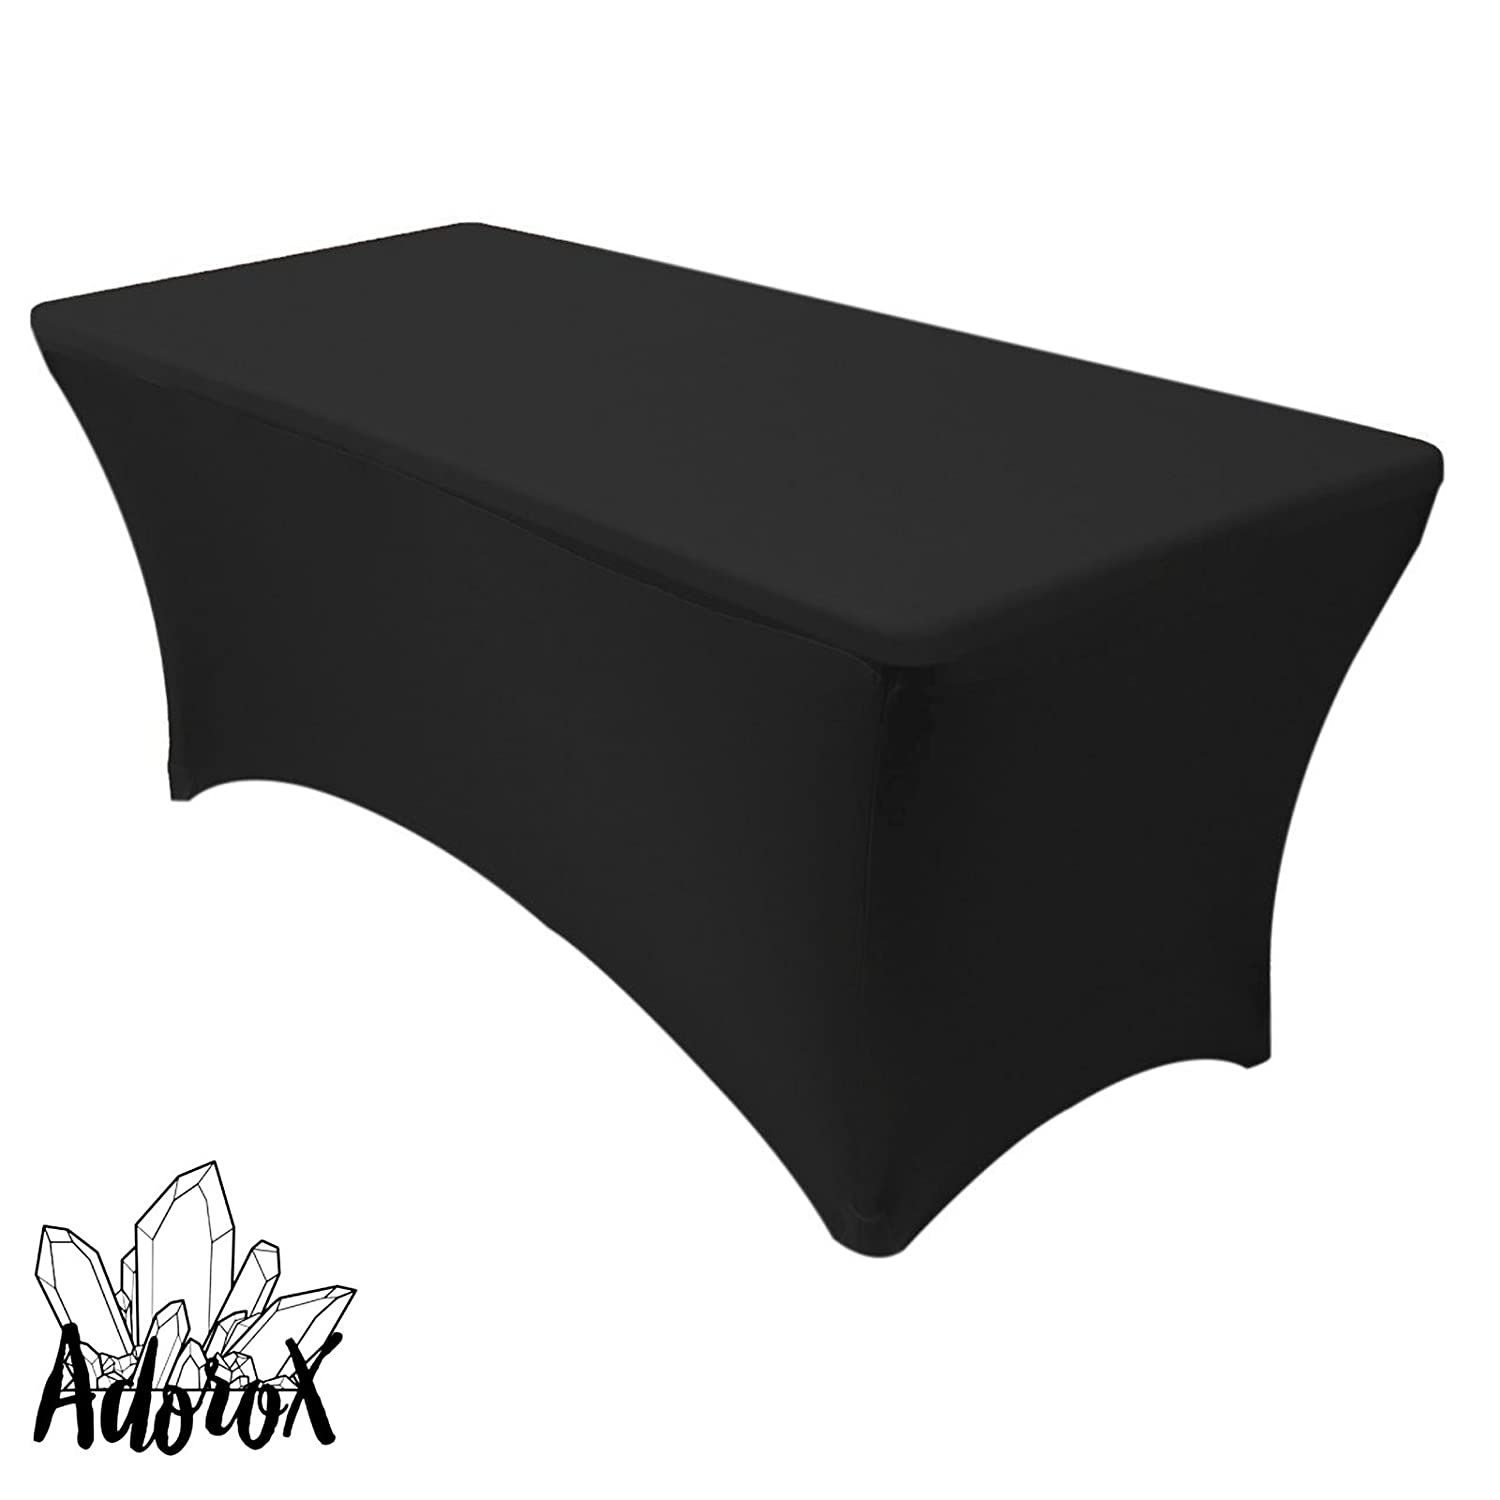 (4 Ft Black) Adorox (1.2m Black) Stretch Fabric Spandex Tight Fit Table Cloth Cover for Holidays (1.2m Black) B072YJ5LHR 4 Ft Black 4 Ft Black